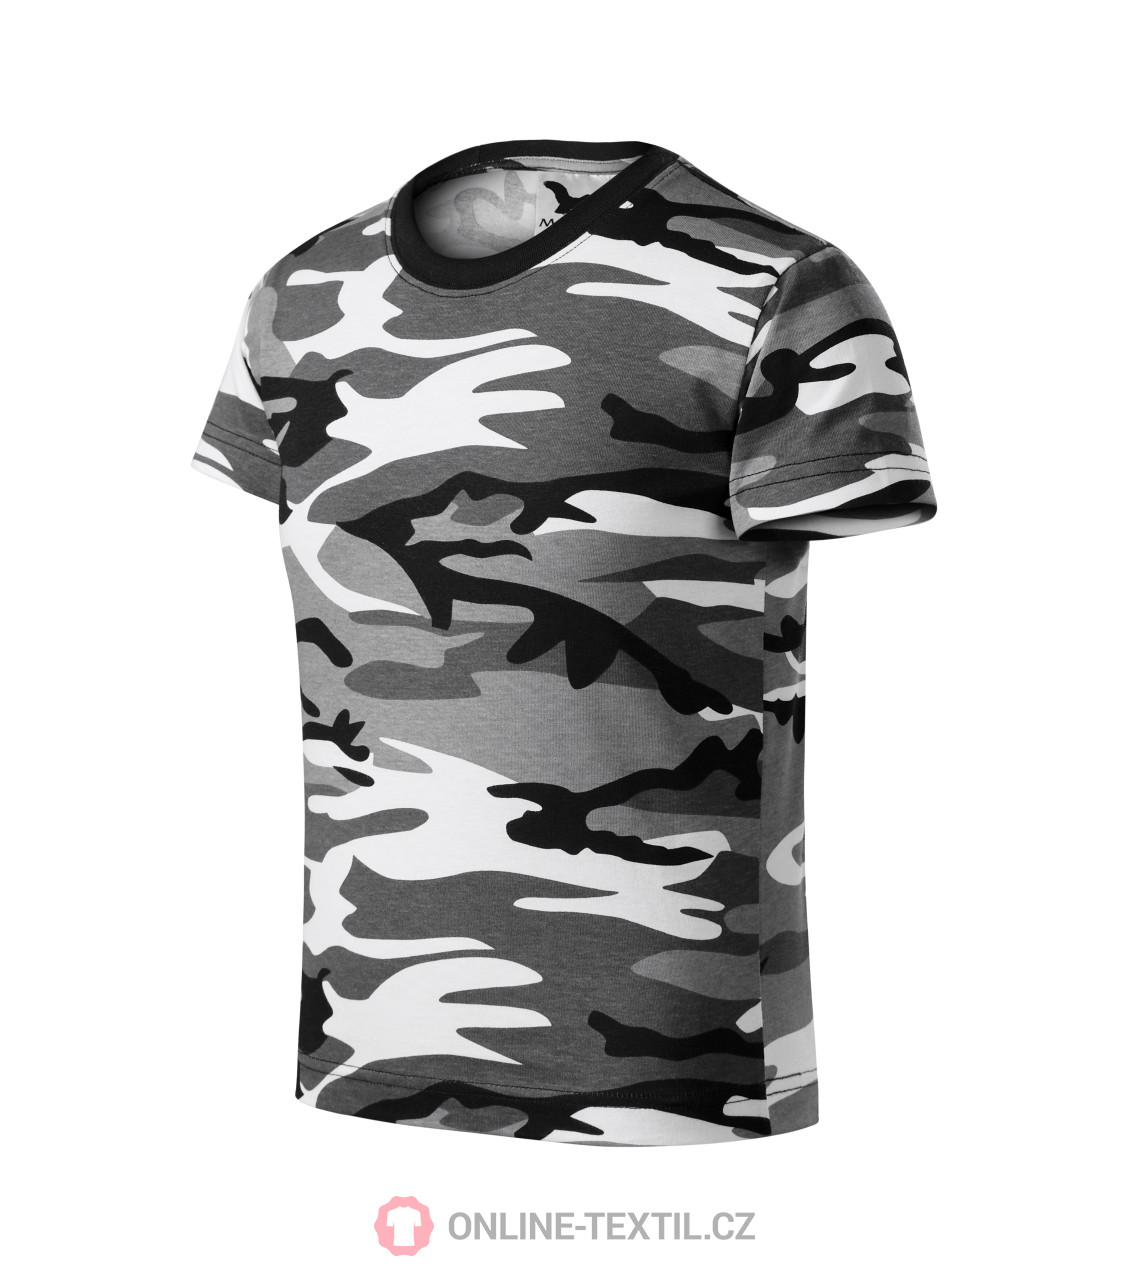 CAMOUFLAGE 100/%COTTON T SHIRT AVAILABLE ALL SIZES...LIMITED QUANTITY